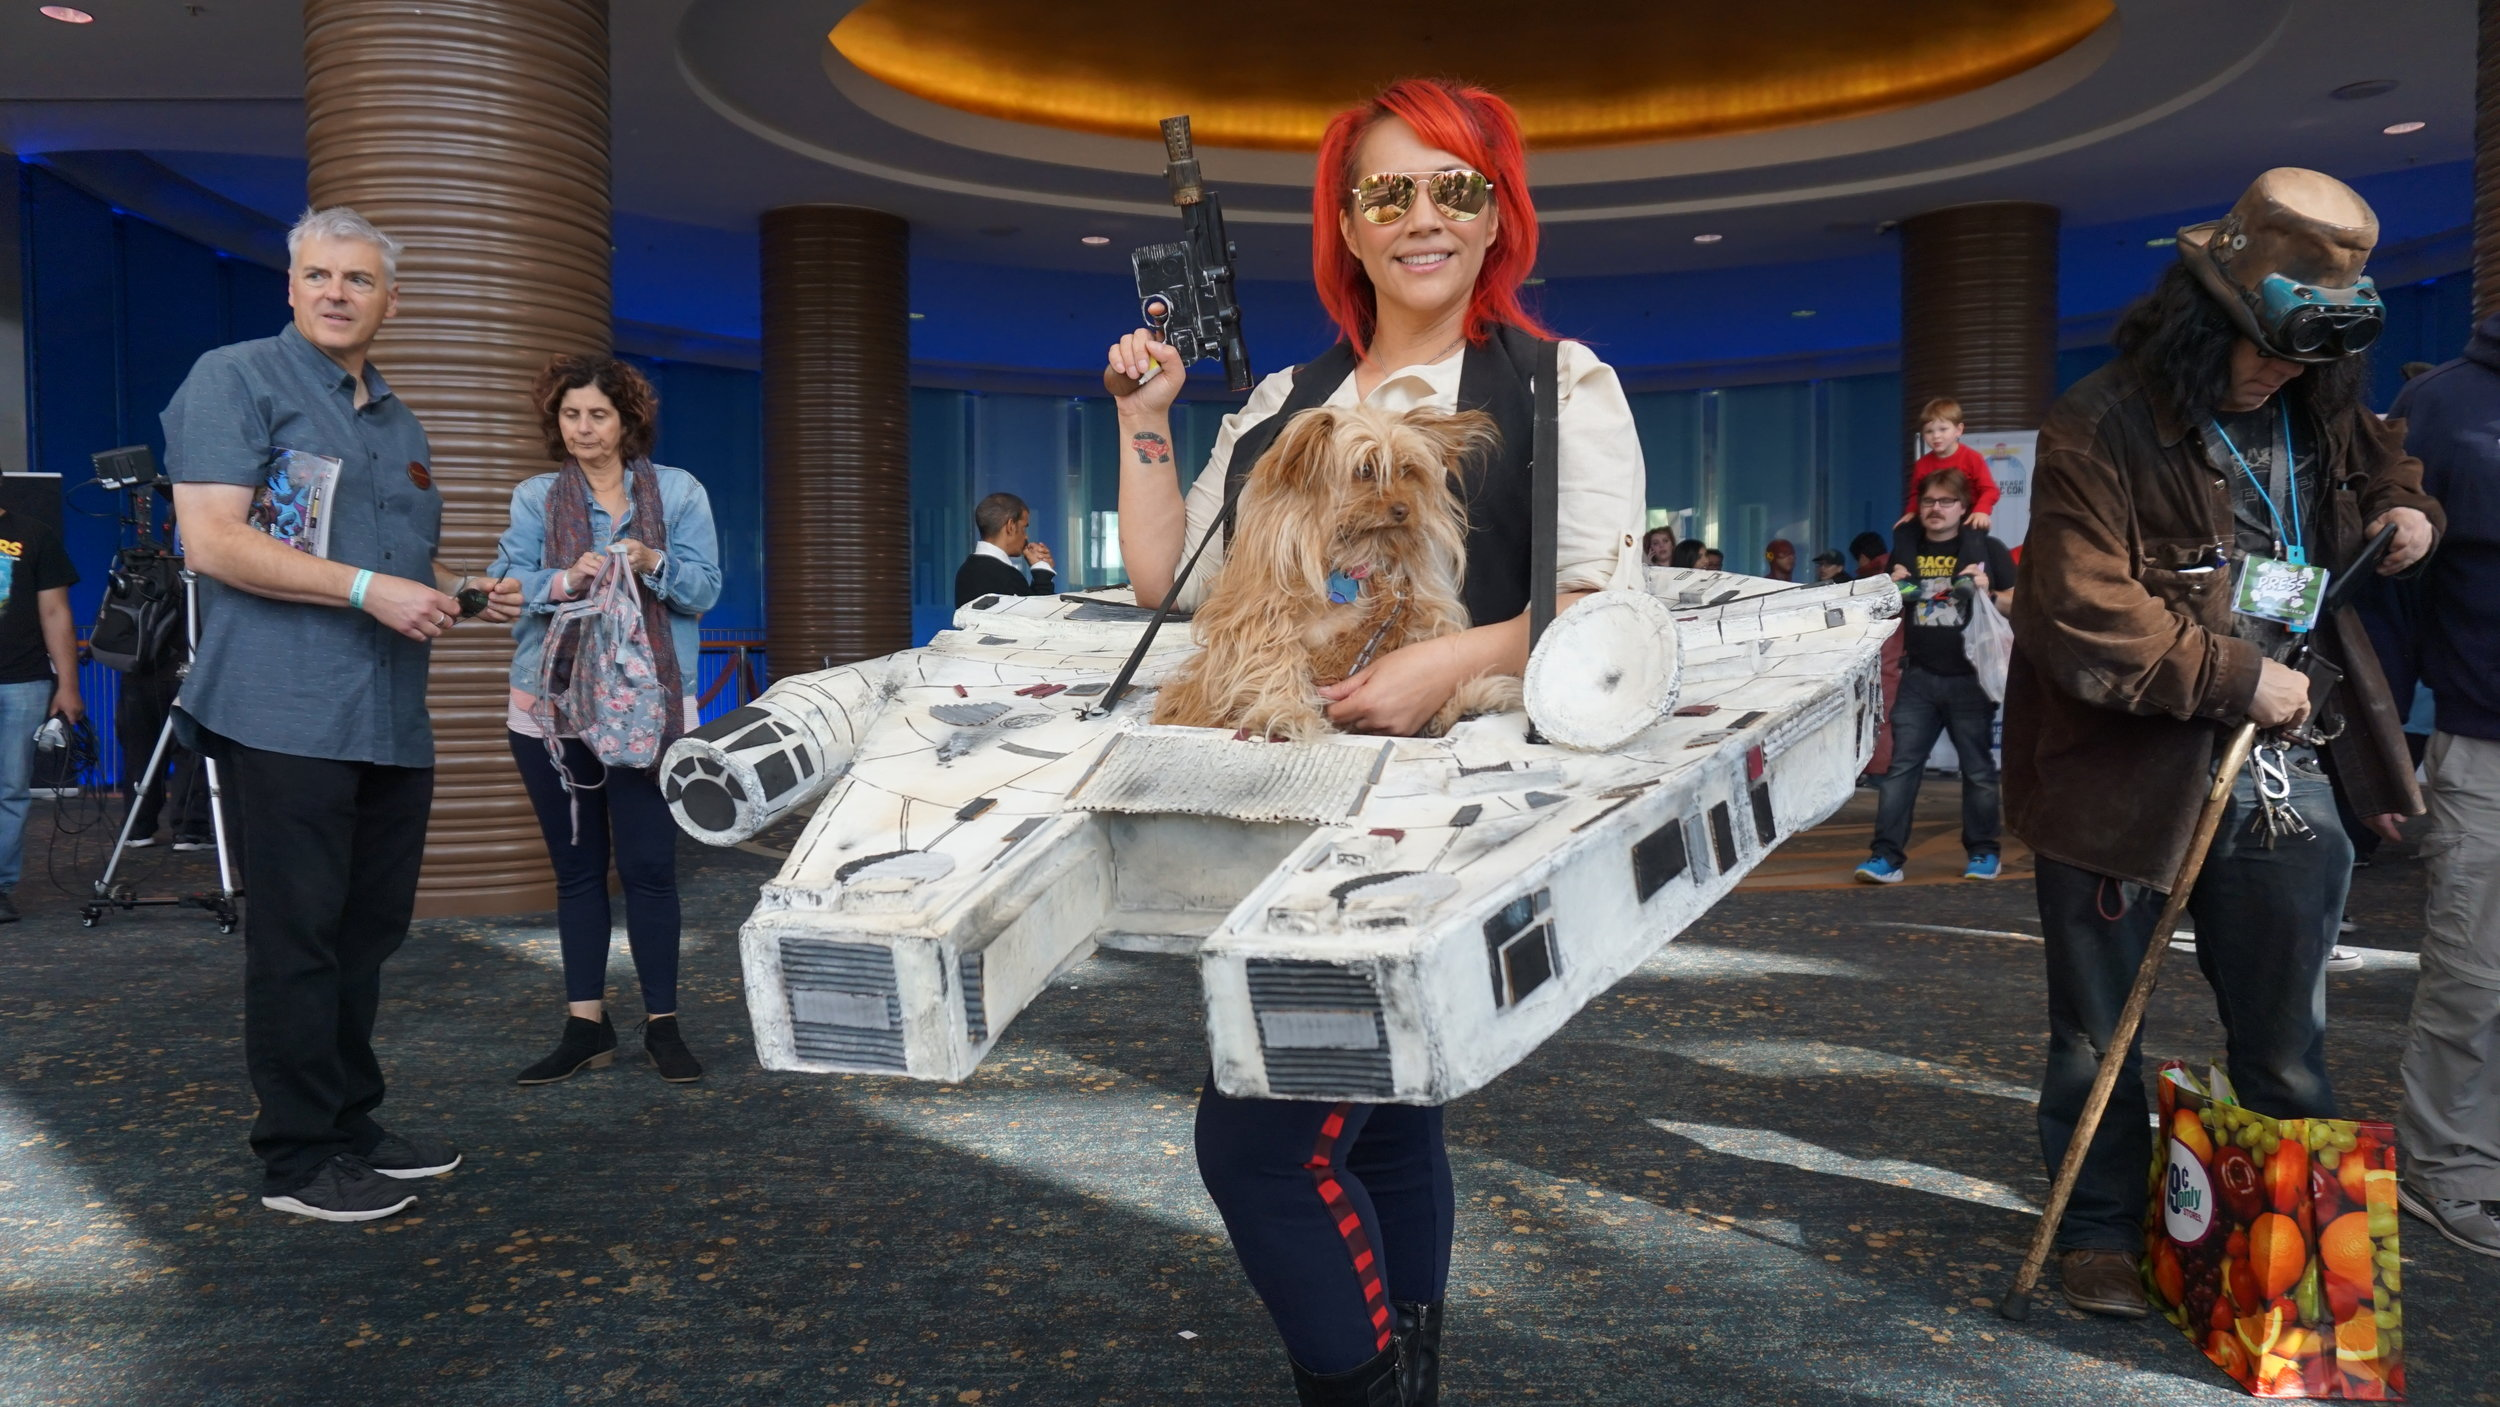 Lady Han Solo with co-pilot Chewbacca and the Millennium Falcon  Instagram: @VicariousVicki_